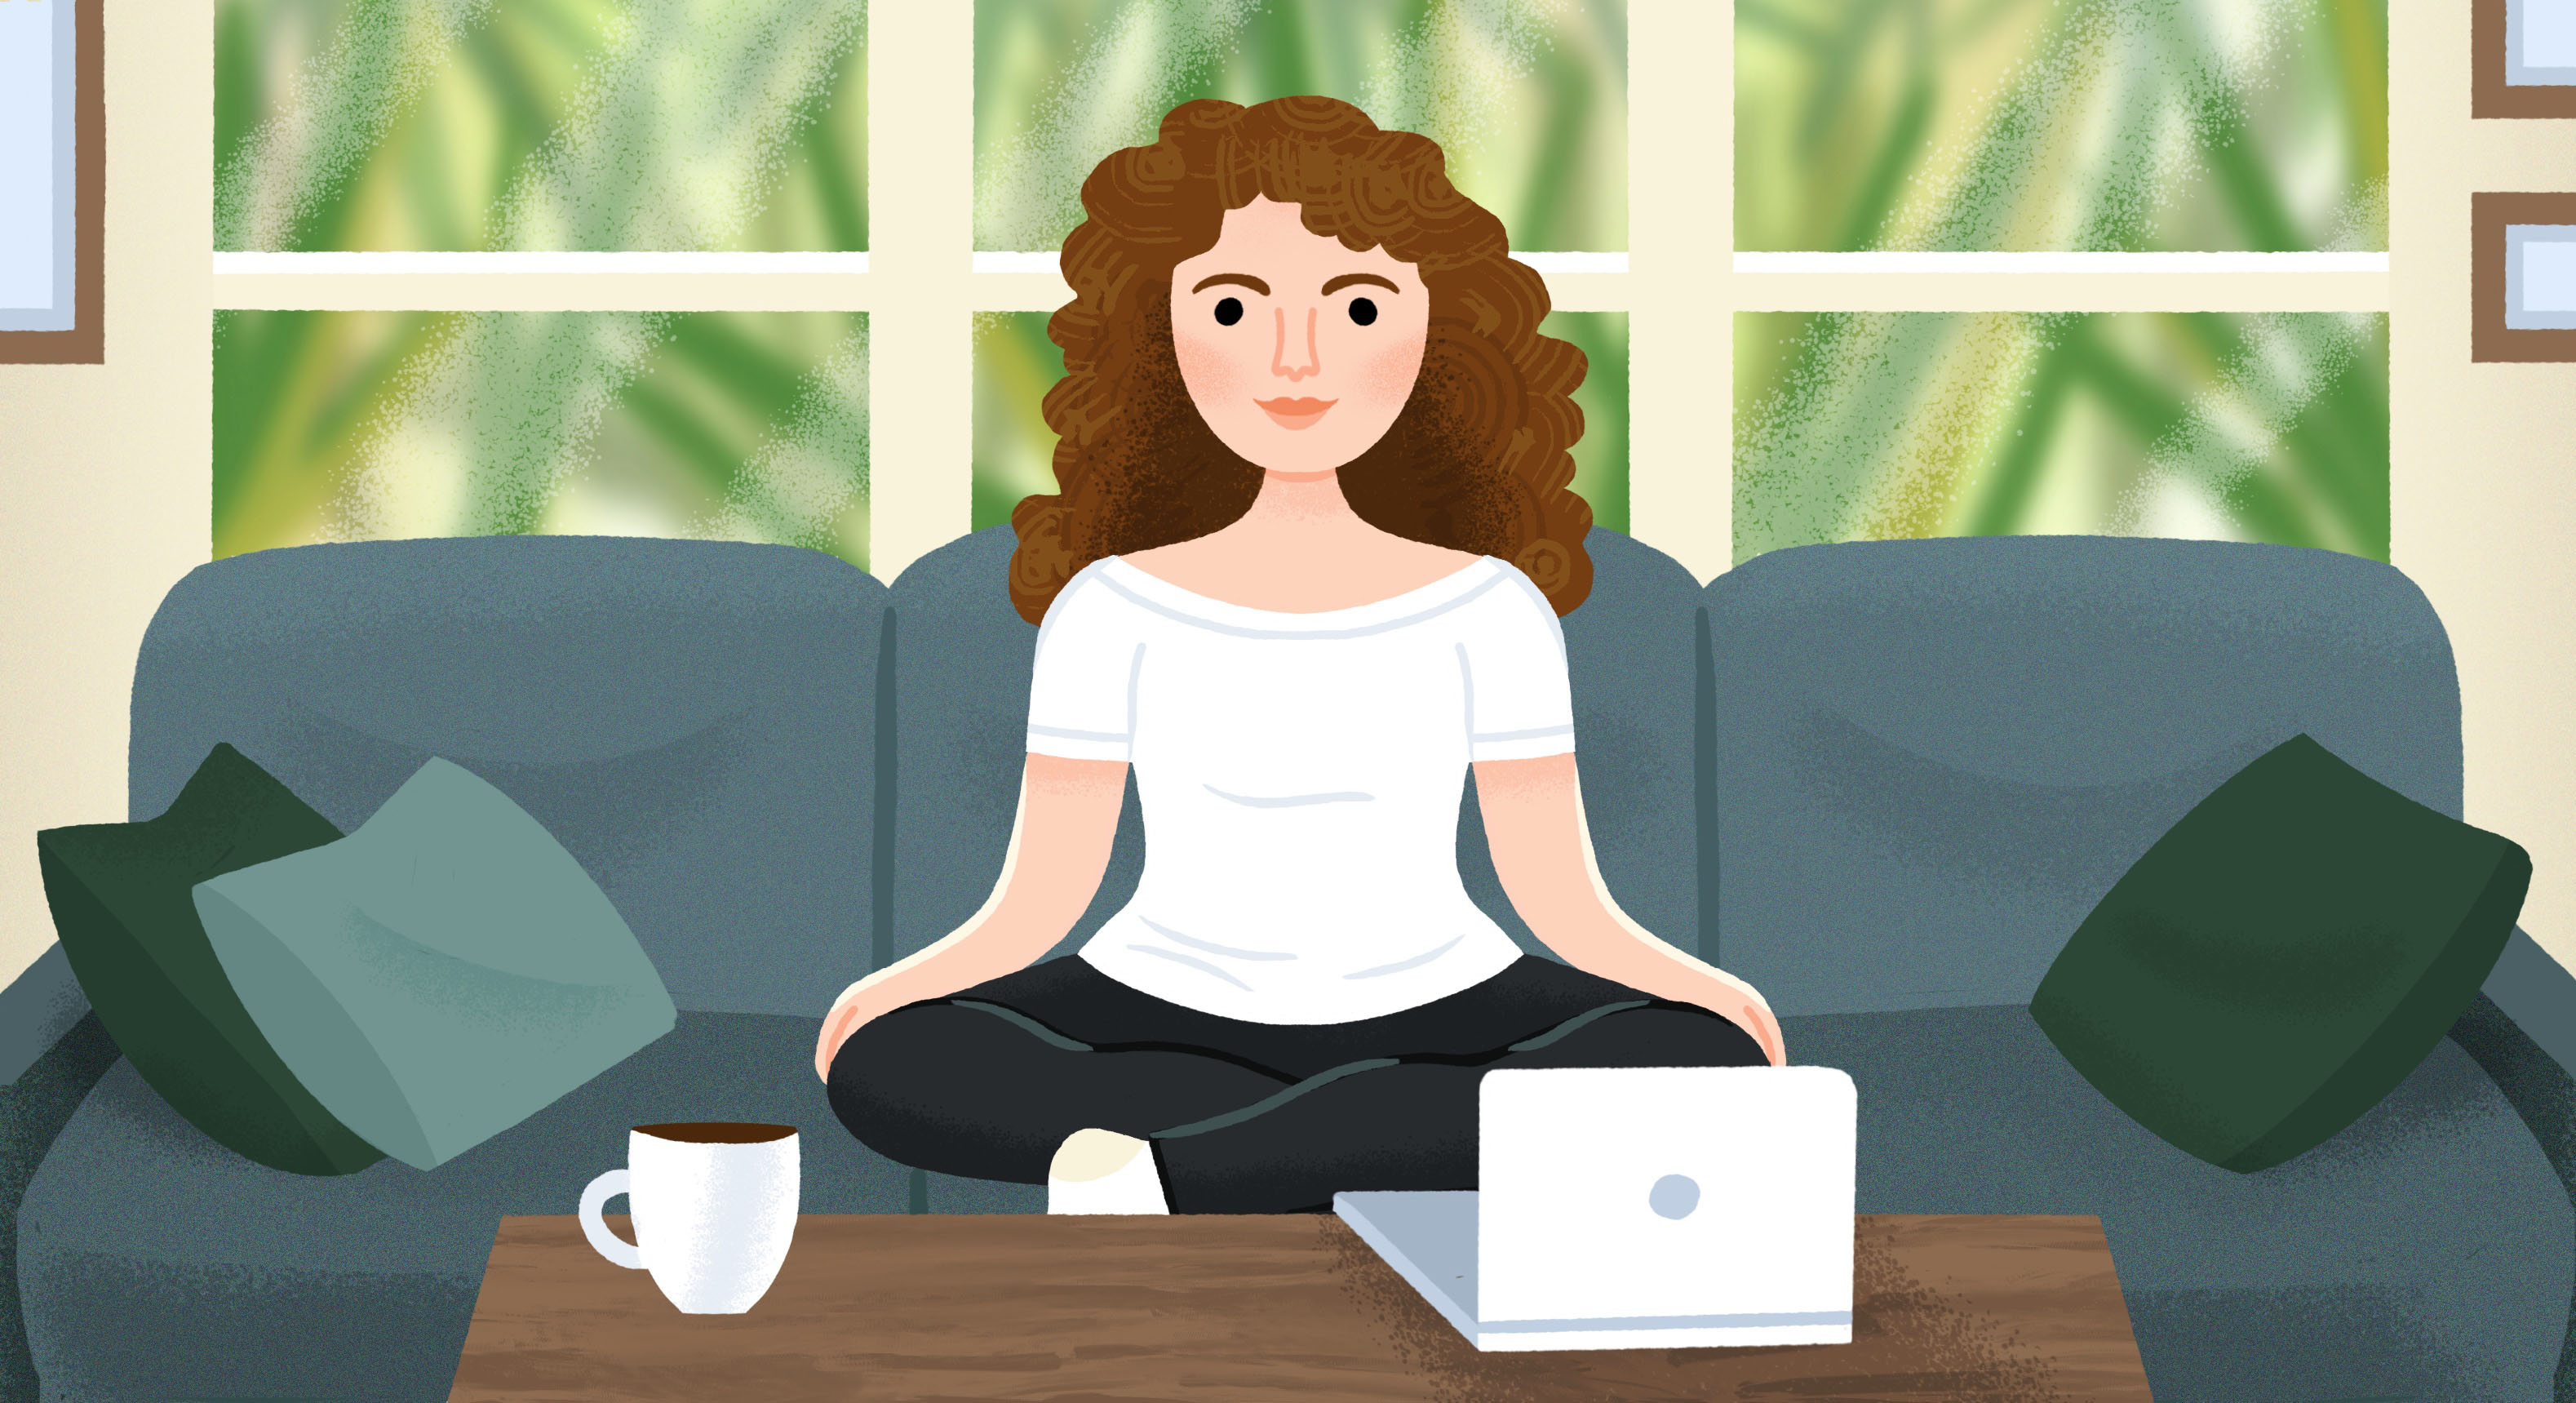 An illustration of a woman with curly hair sitting on a blue sofa. An open laptop and mug are on a coffee table and there is a window with a view of greenery behind her.